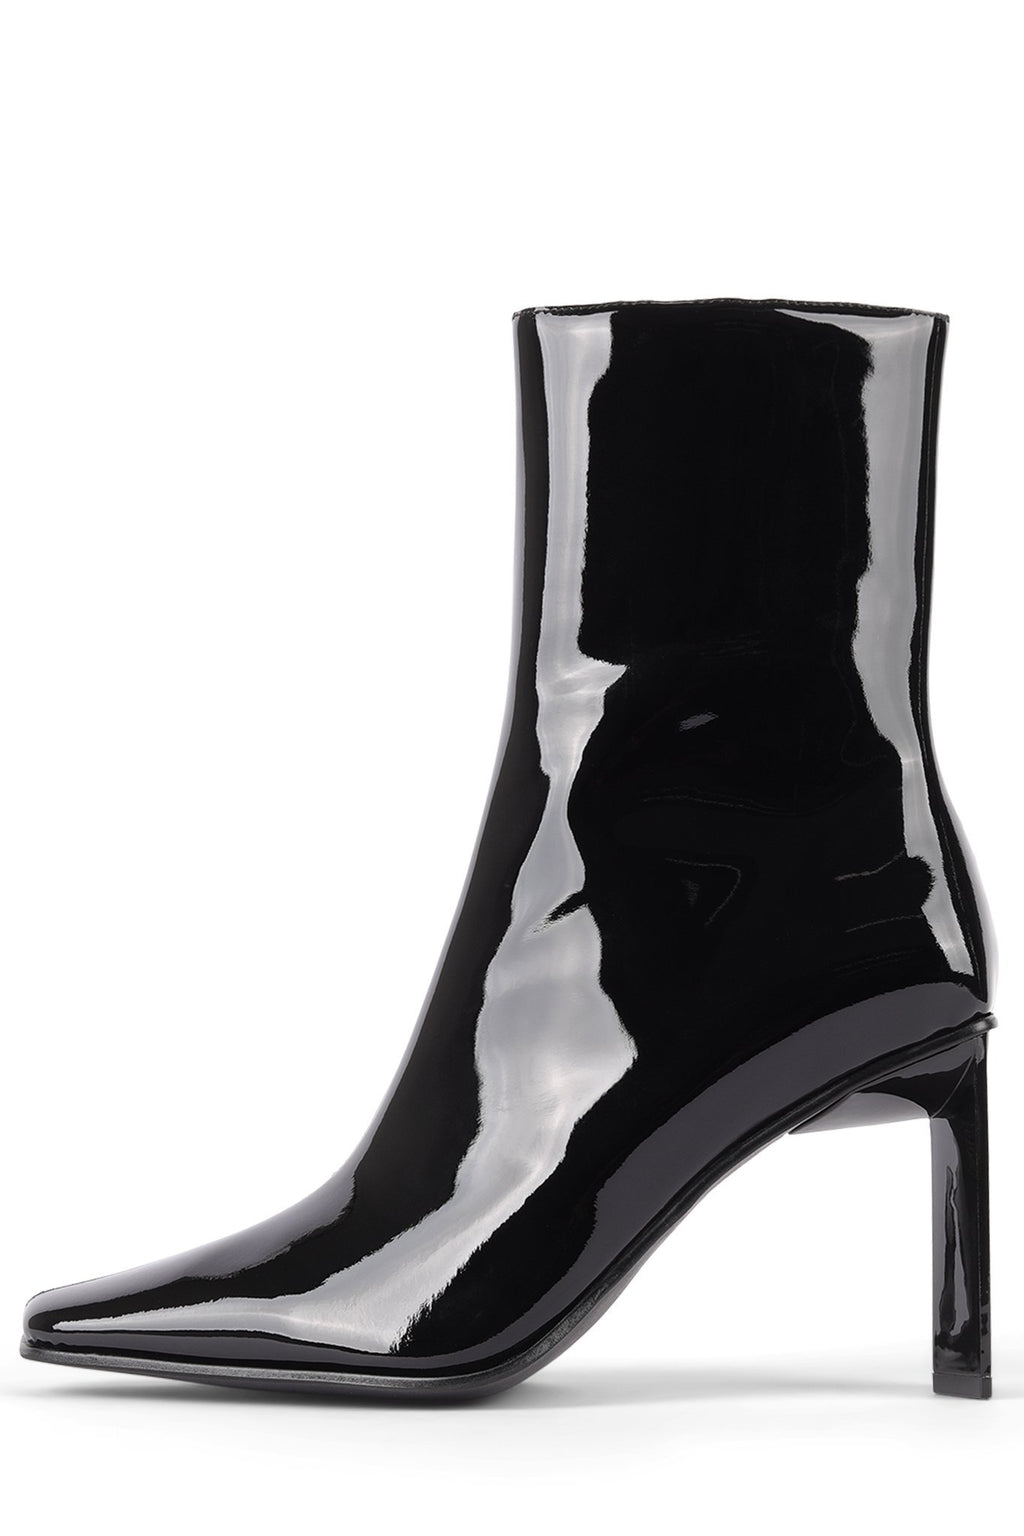 ELODIE-LO Heeled Bootie Jeffrey Campbell Black Patent 6